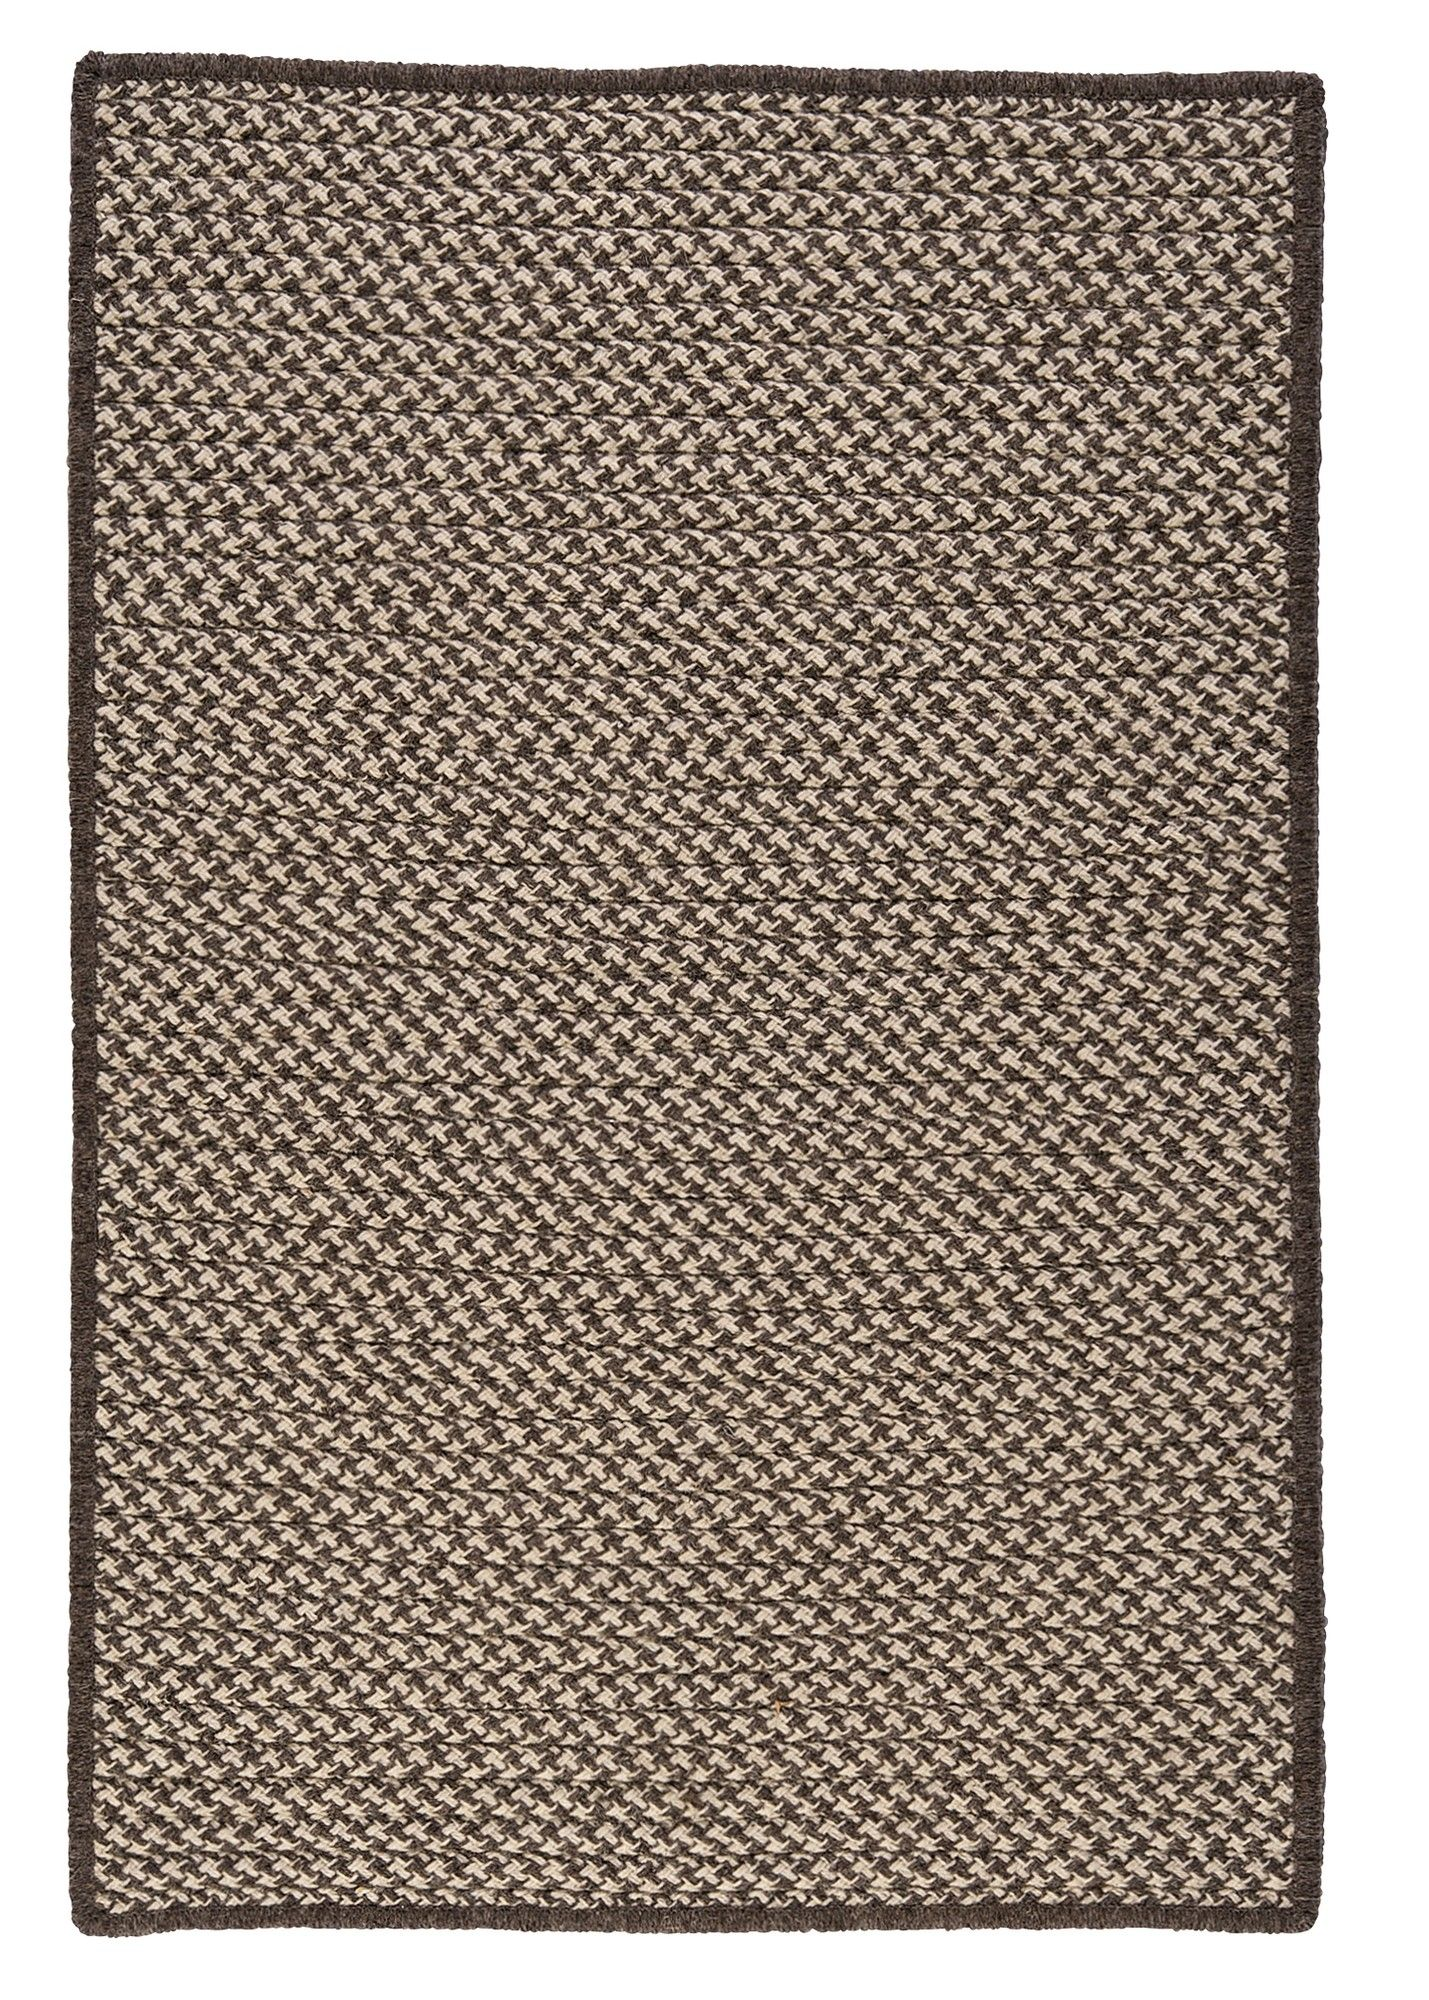 Natural Wool Houndstooth Braided Espresso Area Rug Area Rugs Braided Area Rugs Rugs